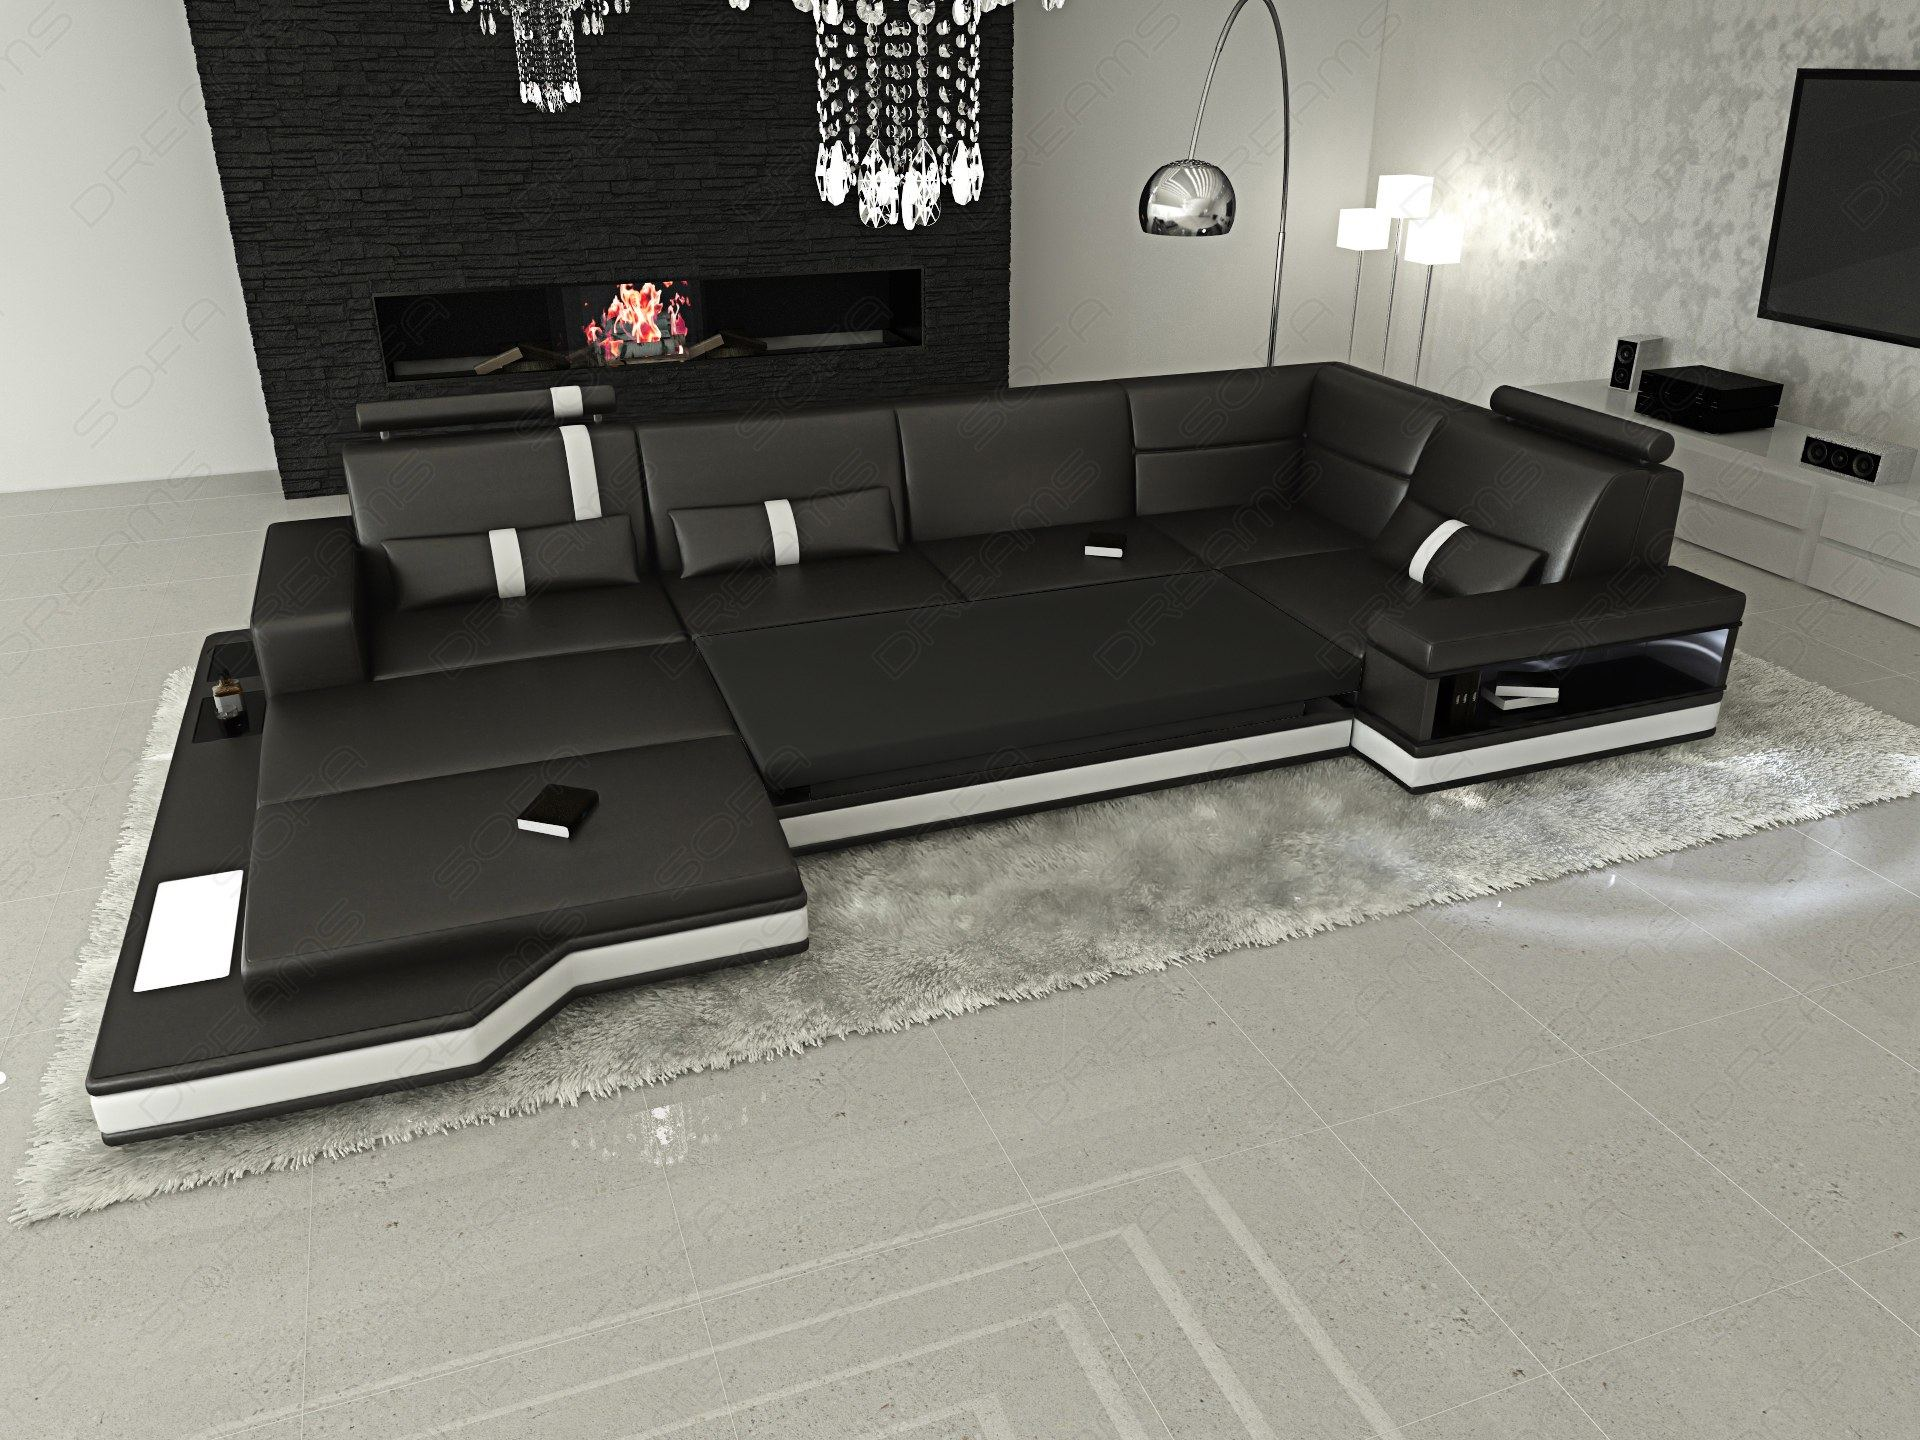 sofa mit schlaffunktion gebraucht sitzer sofa symonya in rot schwarz mit schlaffunktion. Black Bedroom Furniture Sets. Home Design Ideas